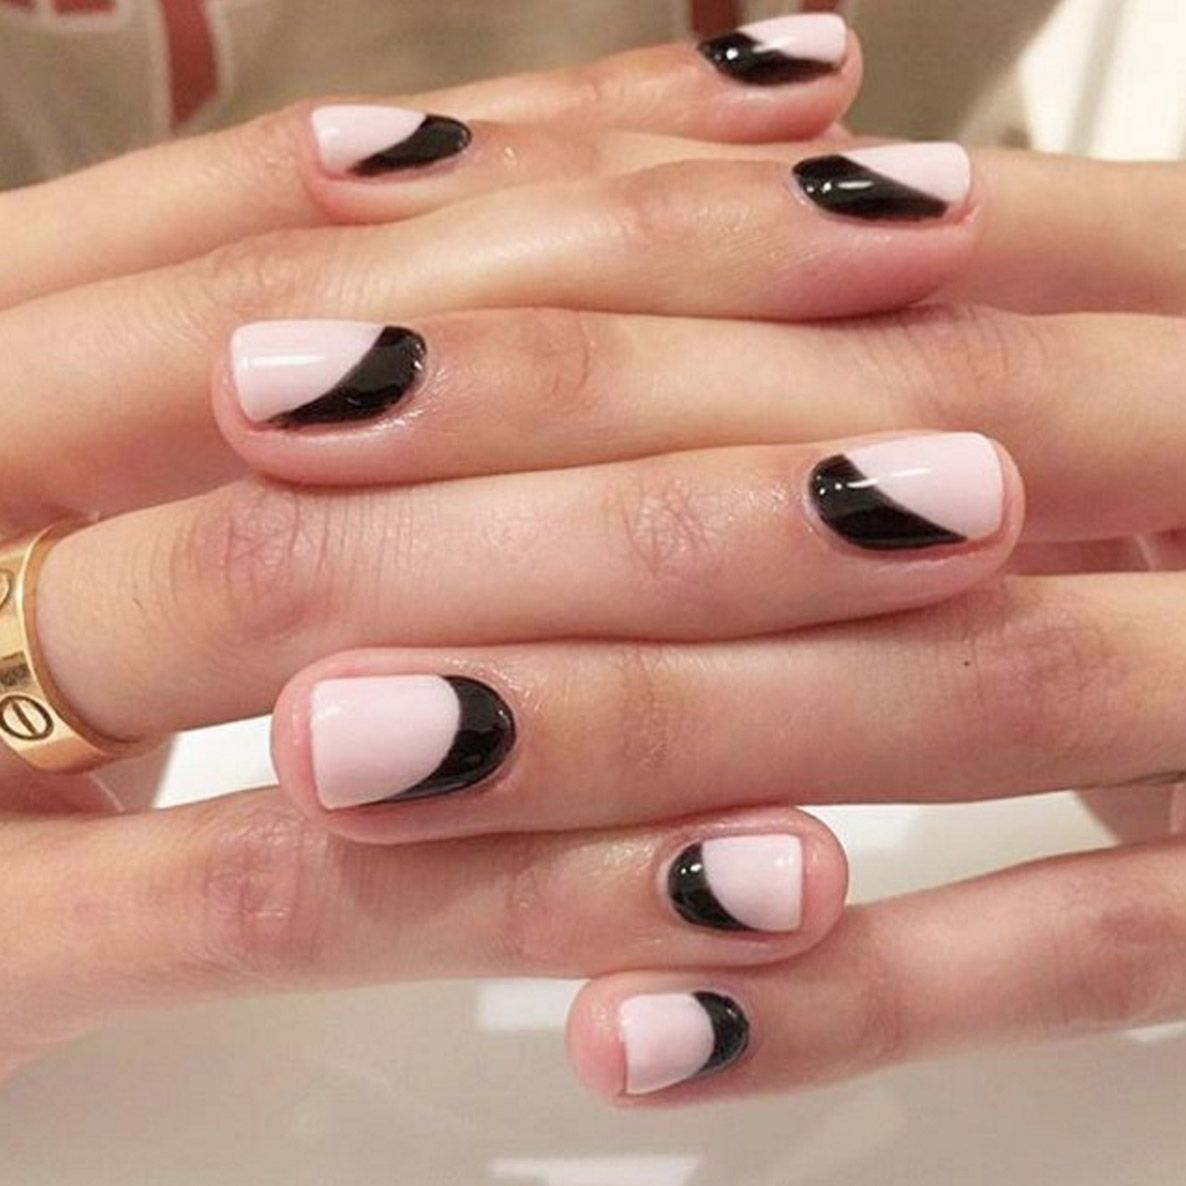 List of Synonyms and Antonyms of the Word: Nail Trends